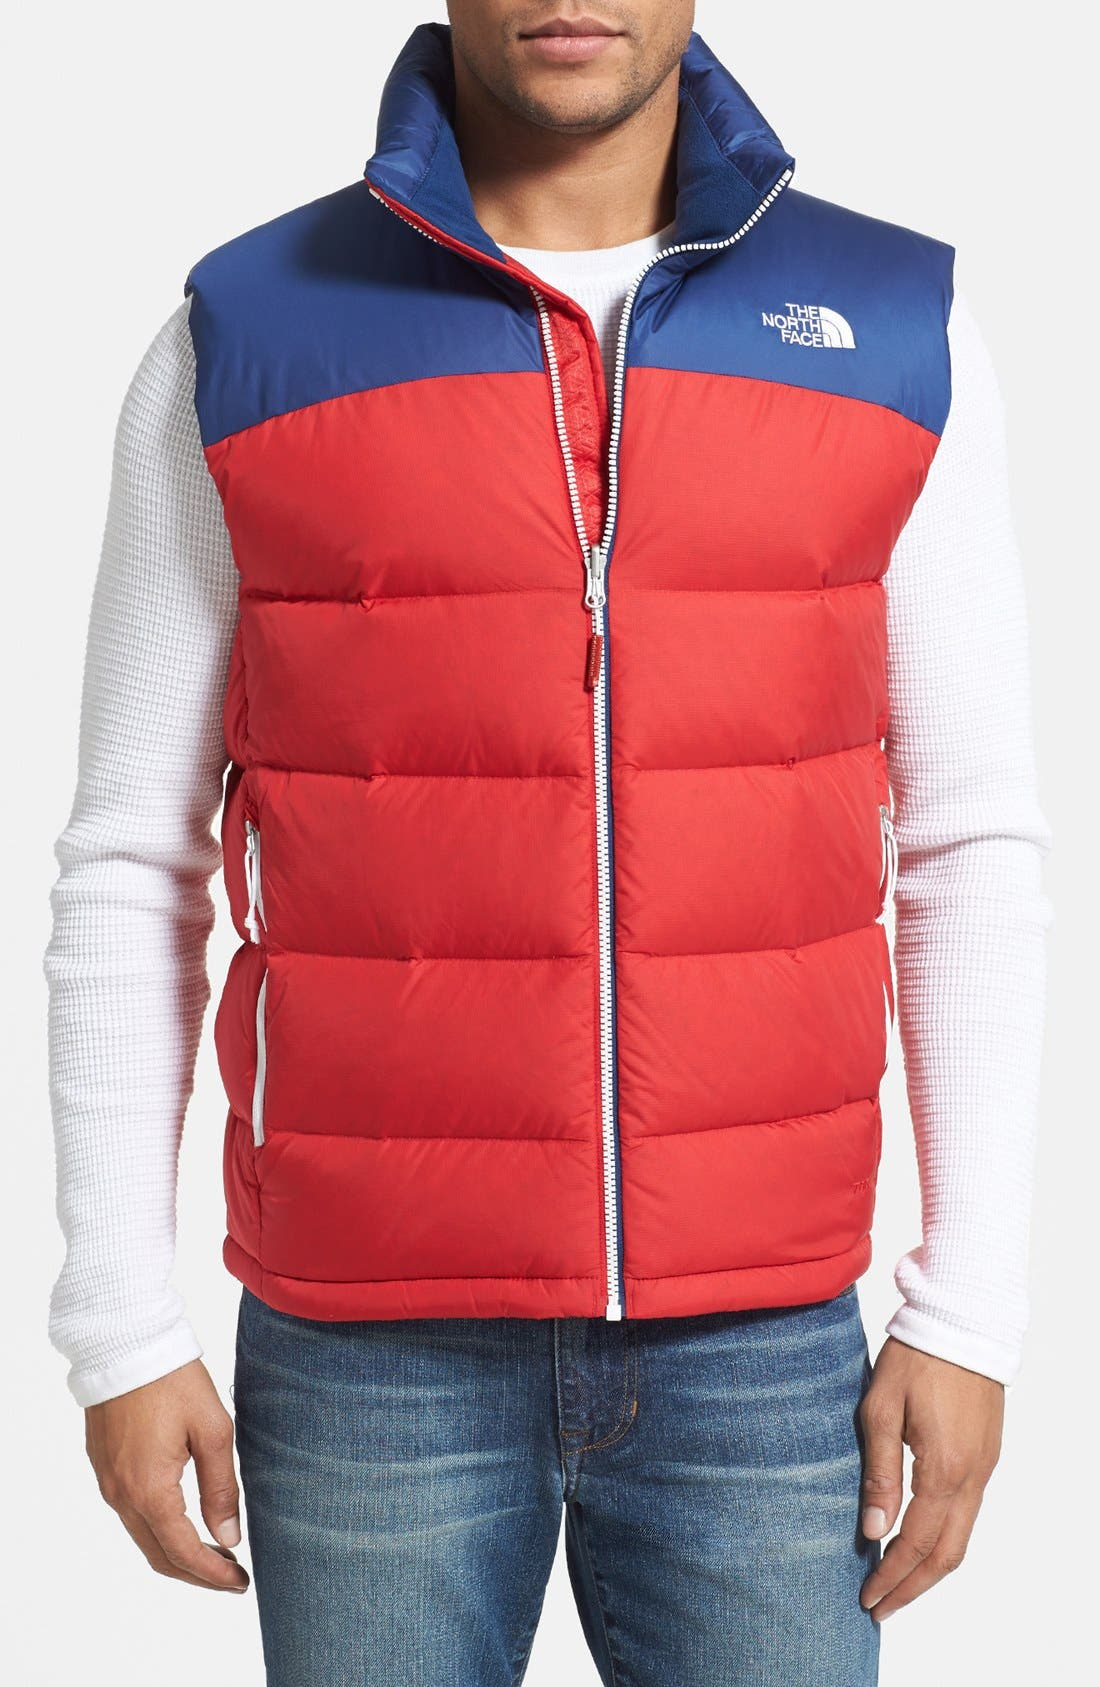 Alternate Image 1 Selected - The North Face 'Nuptse' Colorblocked Down Vest